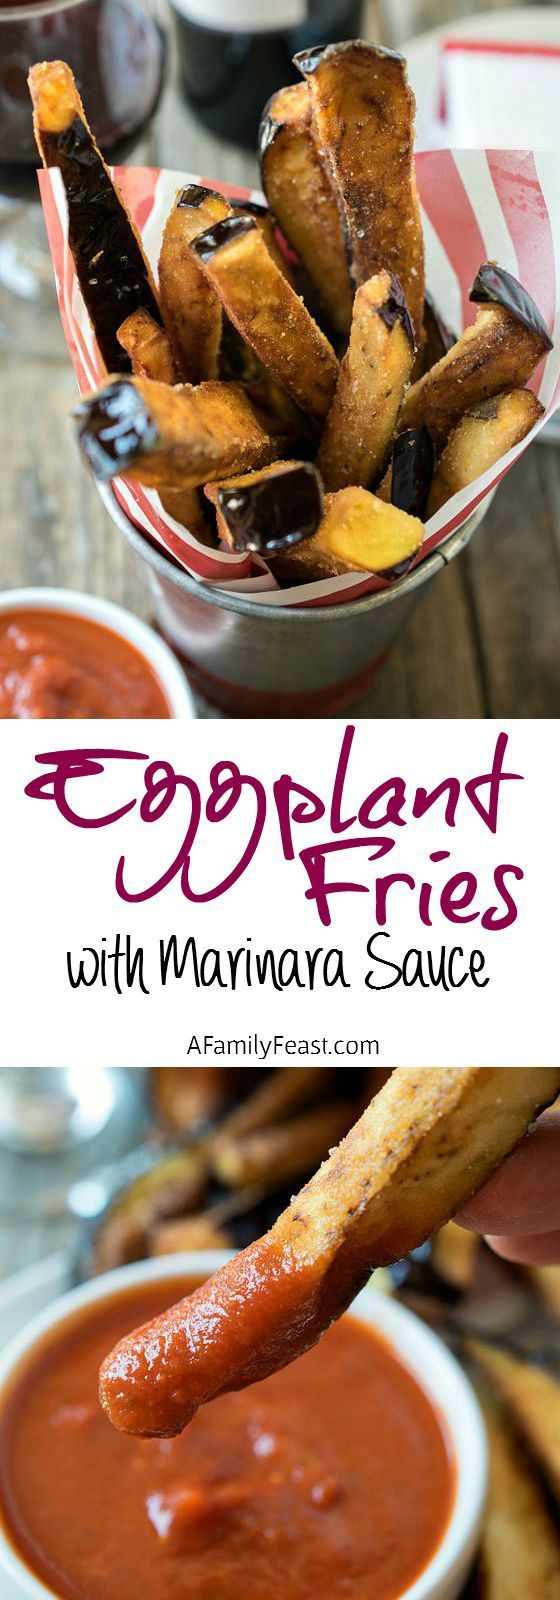 Eggplant Fries with Marinara Sauce